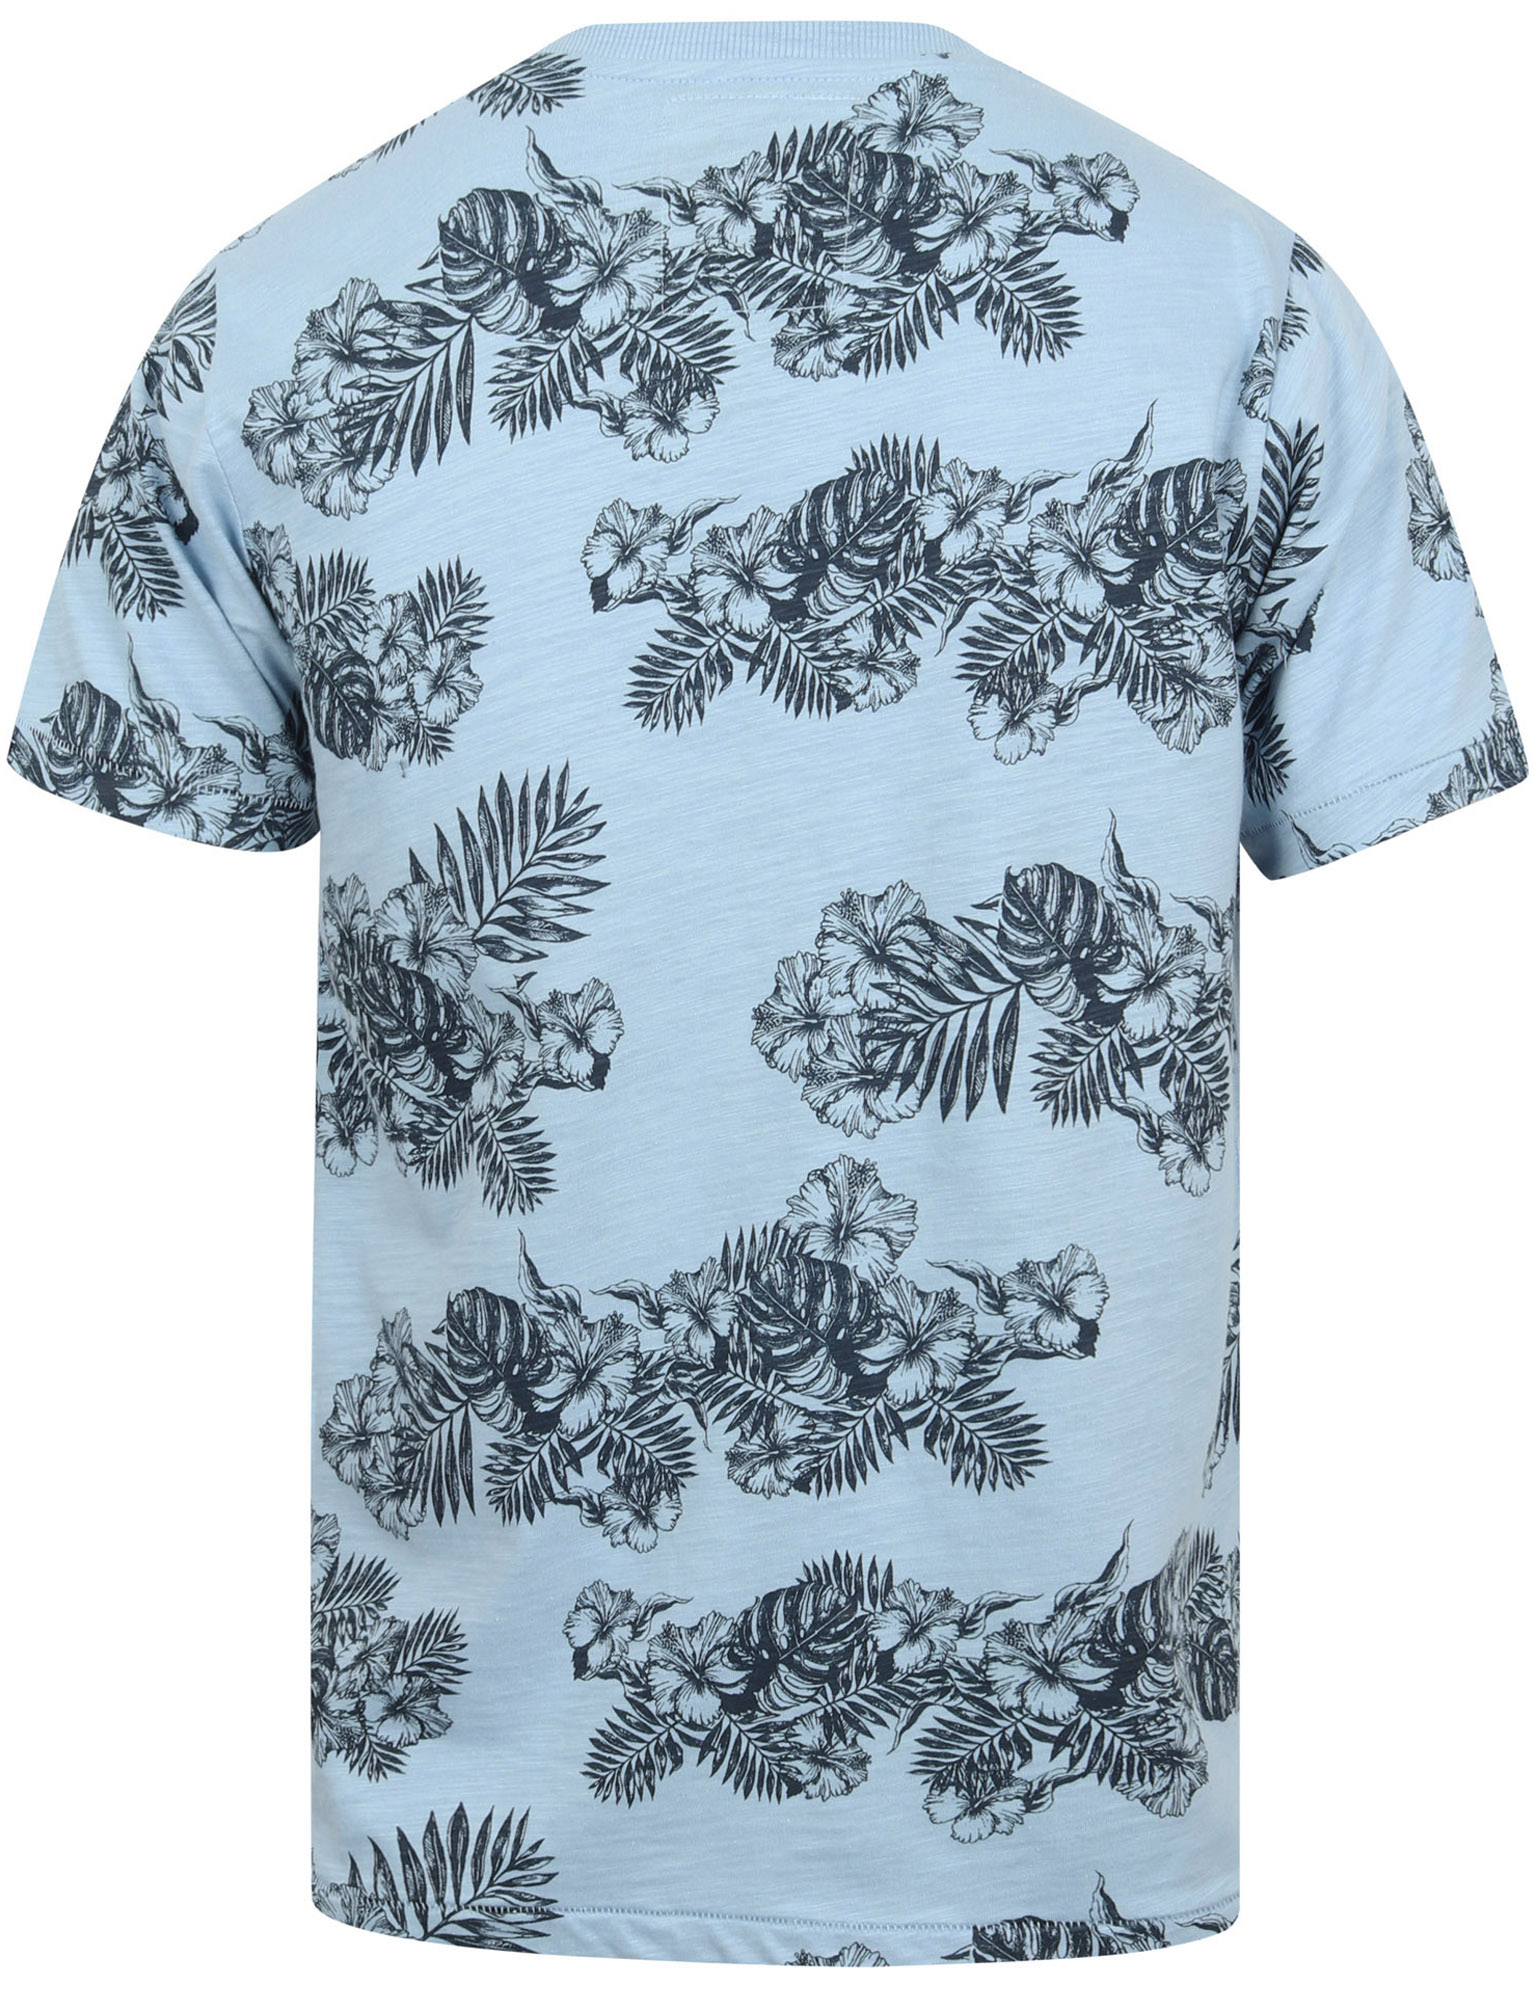 thumbnail 11 - Tokyo-Laundry-Tropical-Print-Crew-Neck-T-Shirt-Hawaiian-Floral-Summer-Holiday